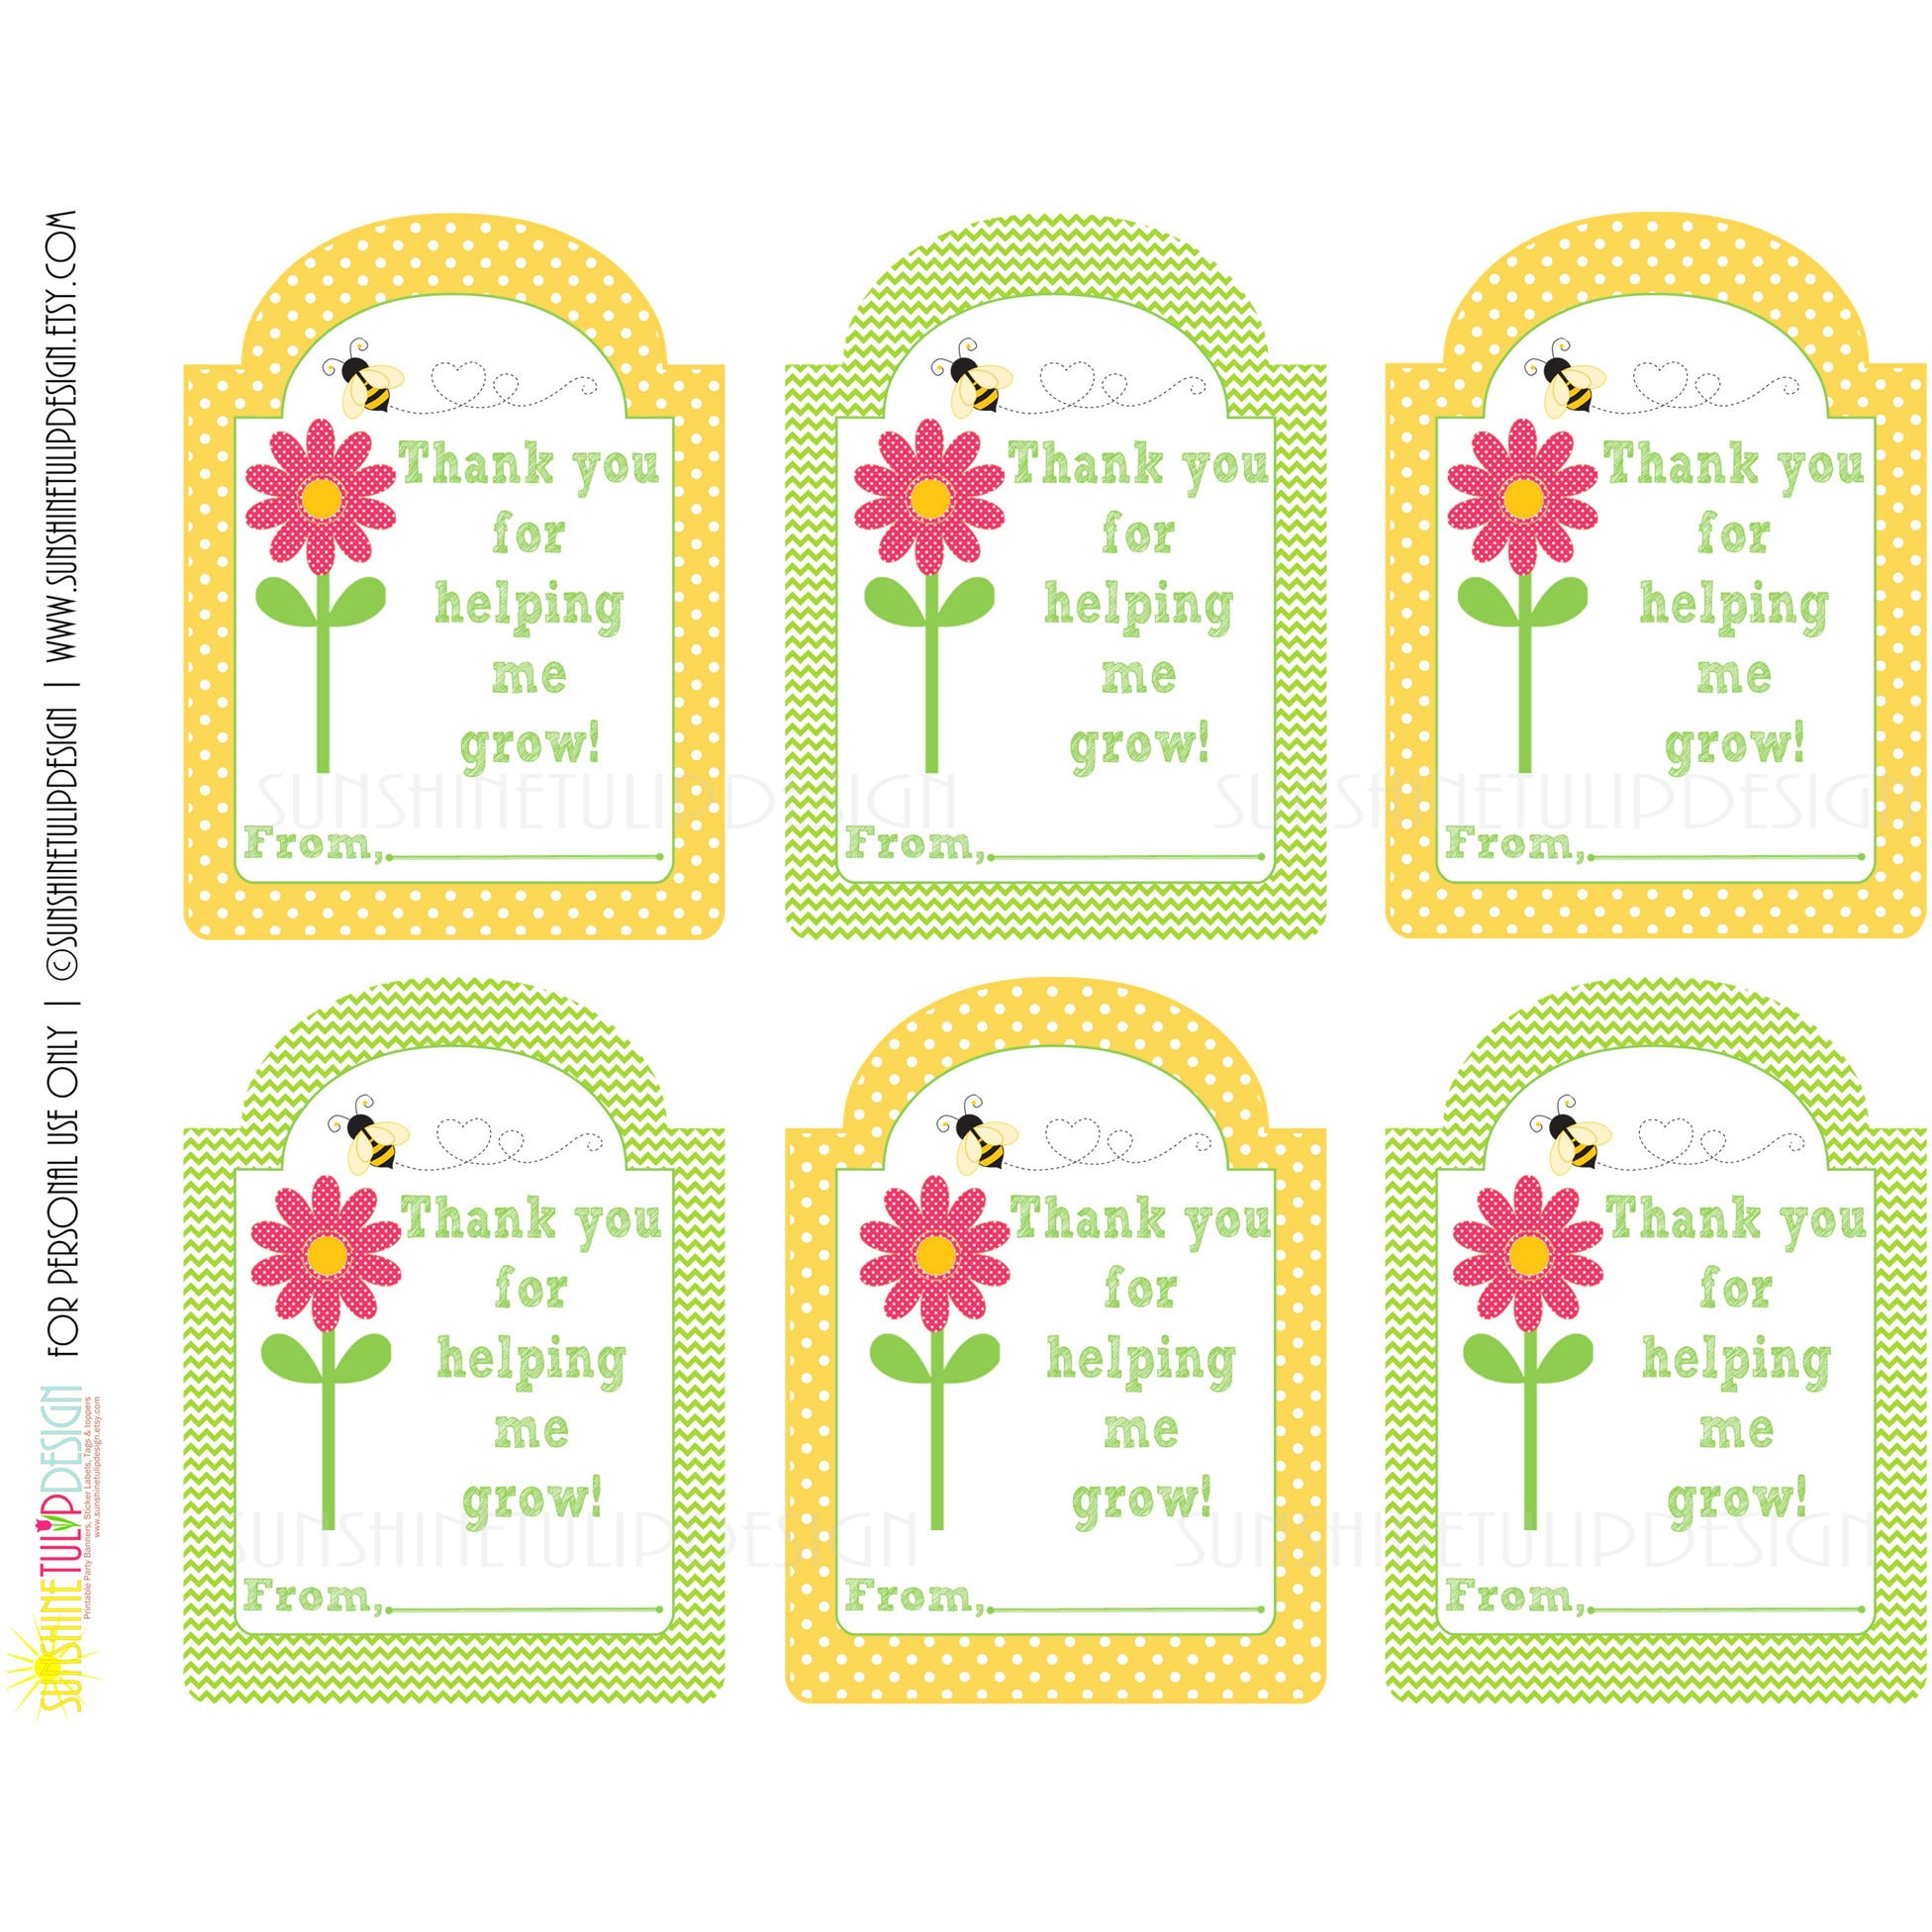 image relating to Printable Thank You Tags known as Printable Trainer Appreciation Reward Tags, Thank Your self for Serving to Me Develop Tags via Sunshinetulipdesign